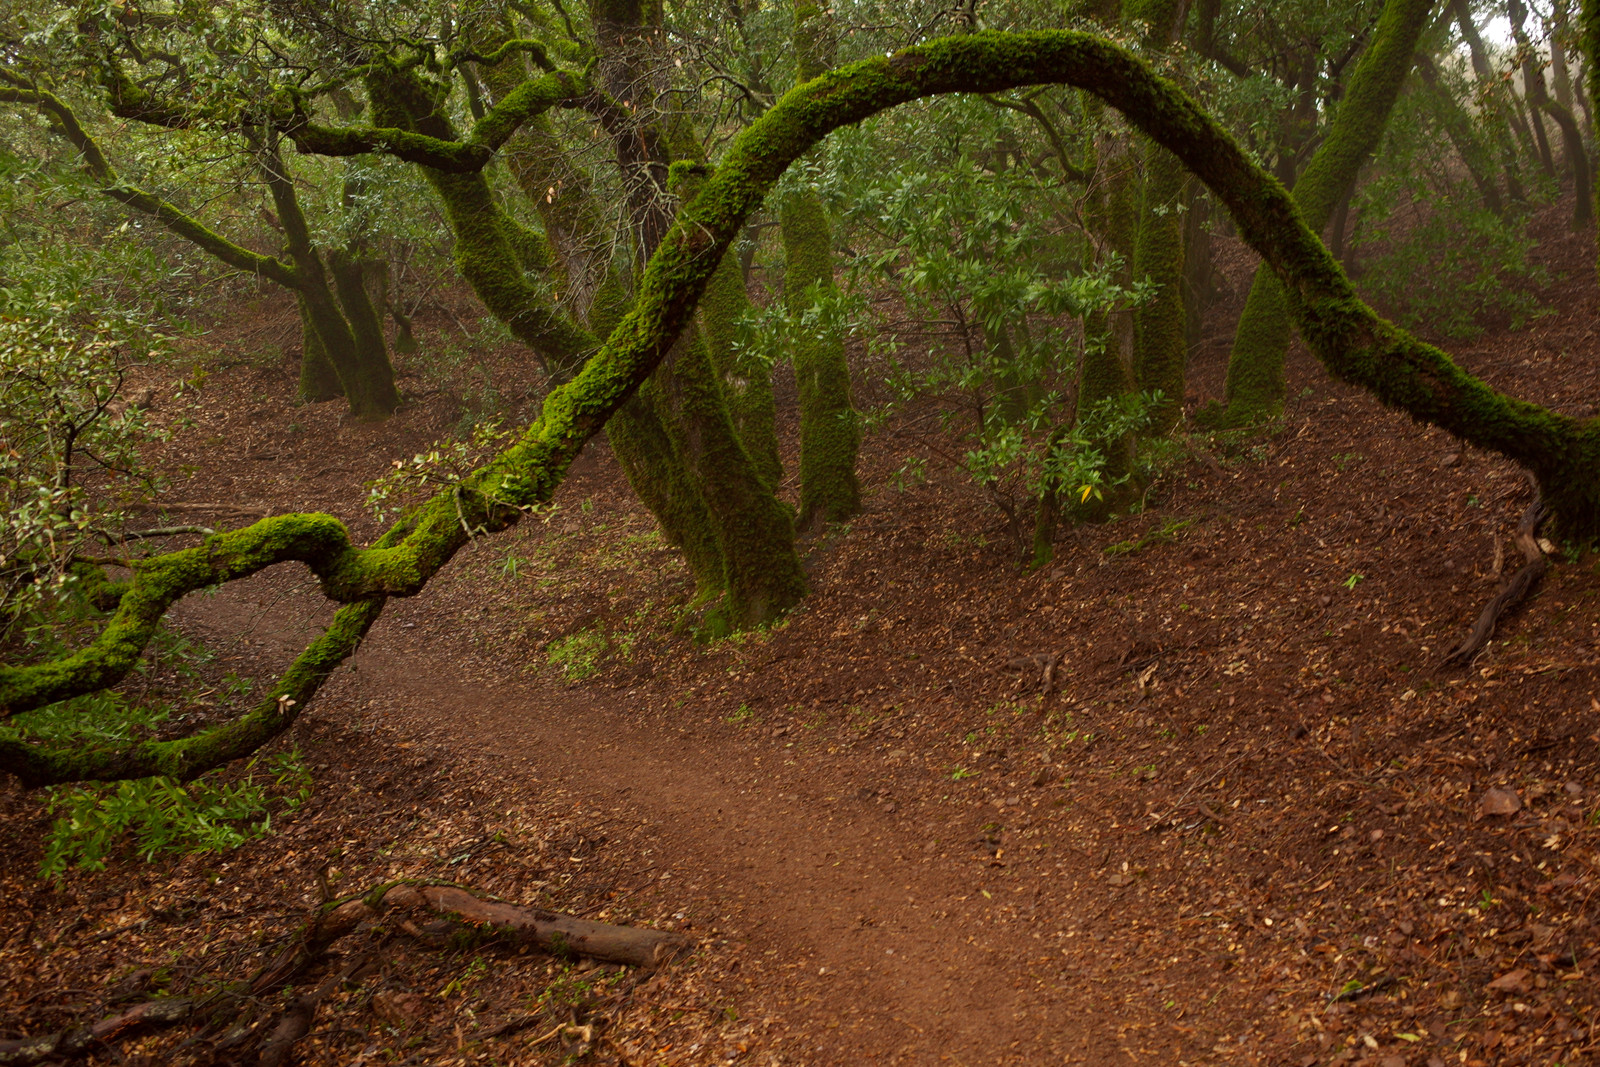 Tree arch over trail in Mount Diablo